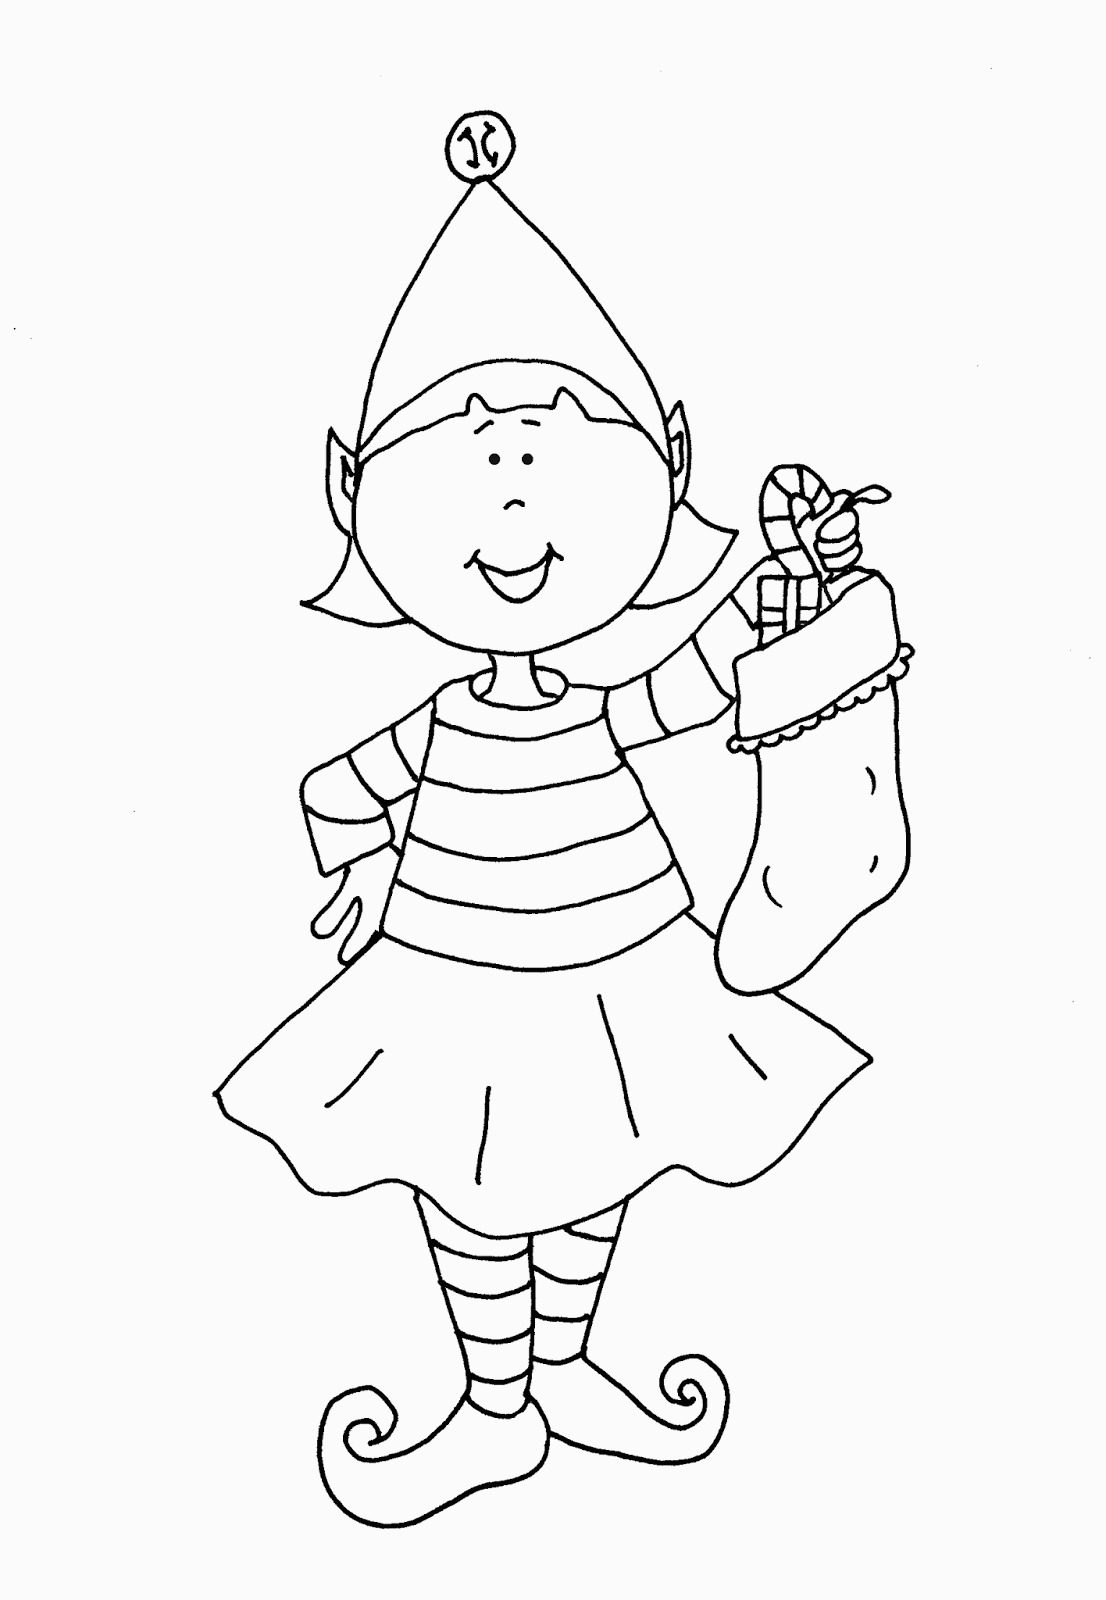 Elf Coloring Pages Printable Printable Girl Elf The Shelf Coloring Pages Coloring Home For Elf